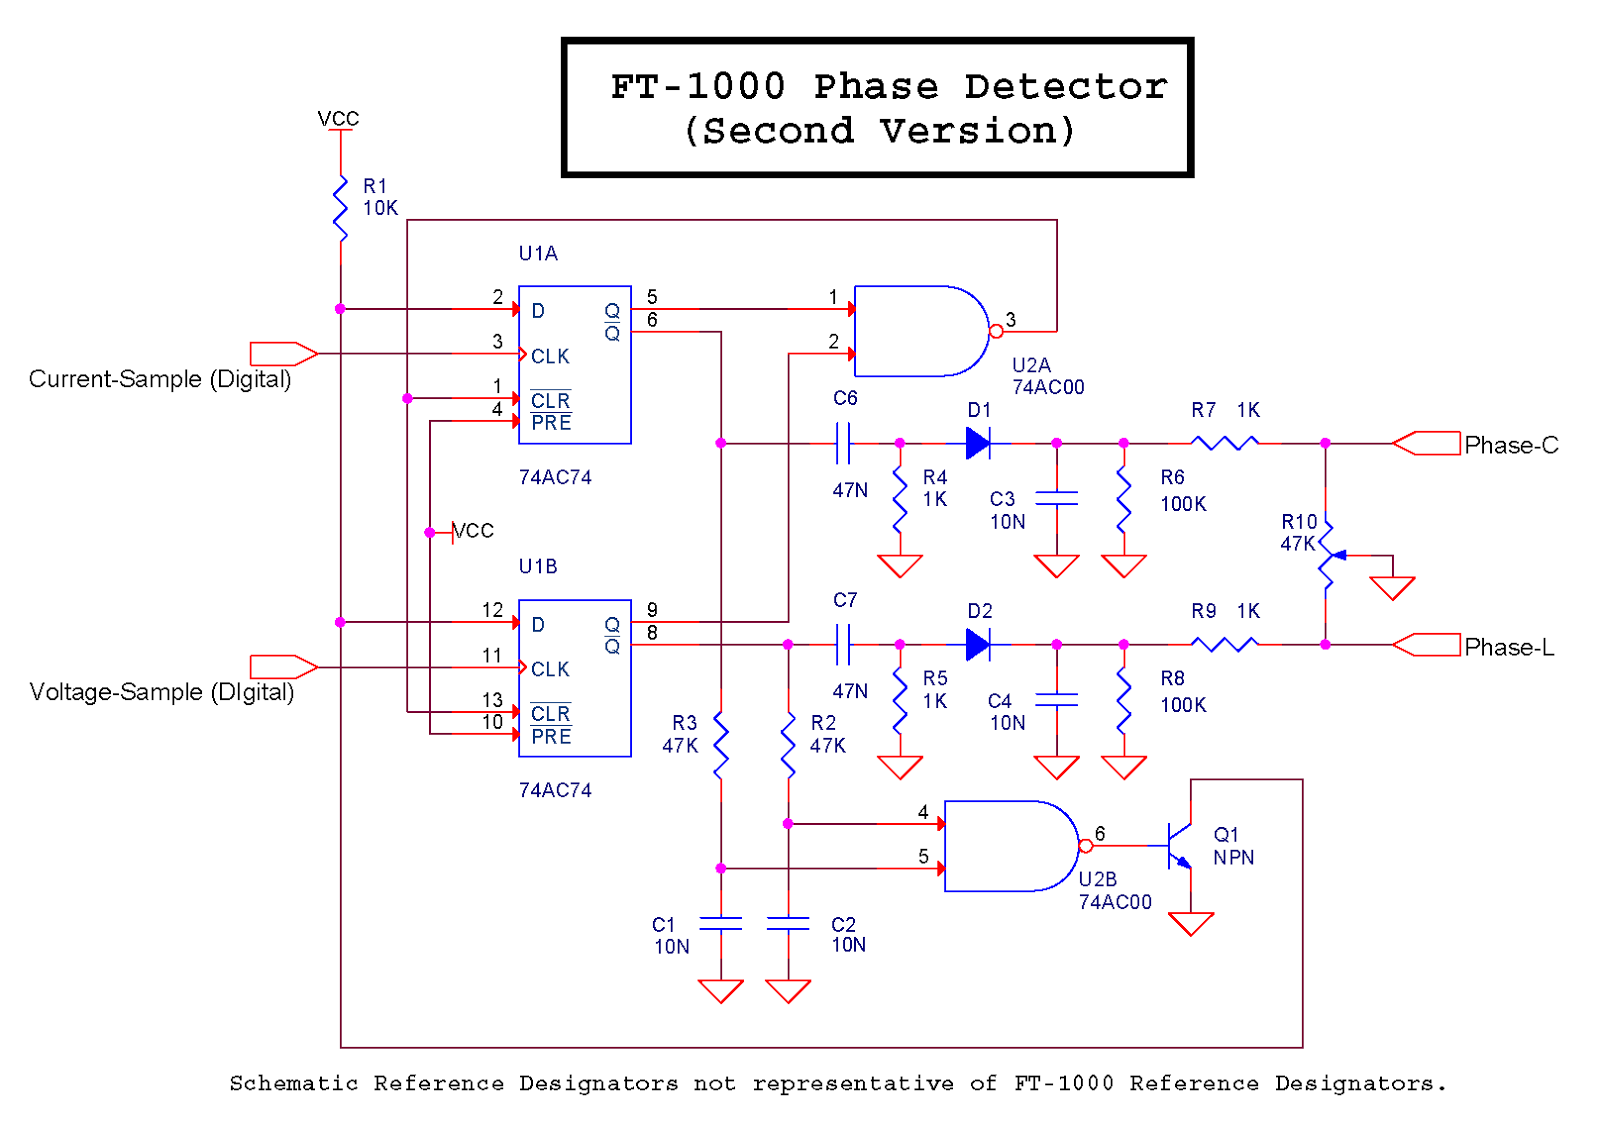 K6jca Antenna Auto Tuner Design Part 6 Notes On Match Detection Inductance Meter Circuit The Dual D Flip Flop Reset By A Nand Gate Is Common Phase Detector Which You Can Also Find Implemented In Ic Chips As For Example